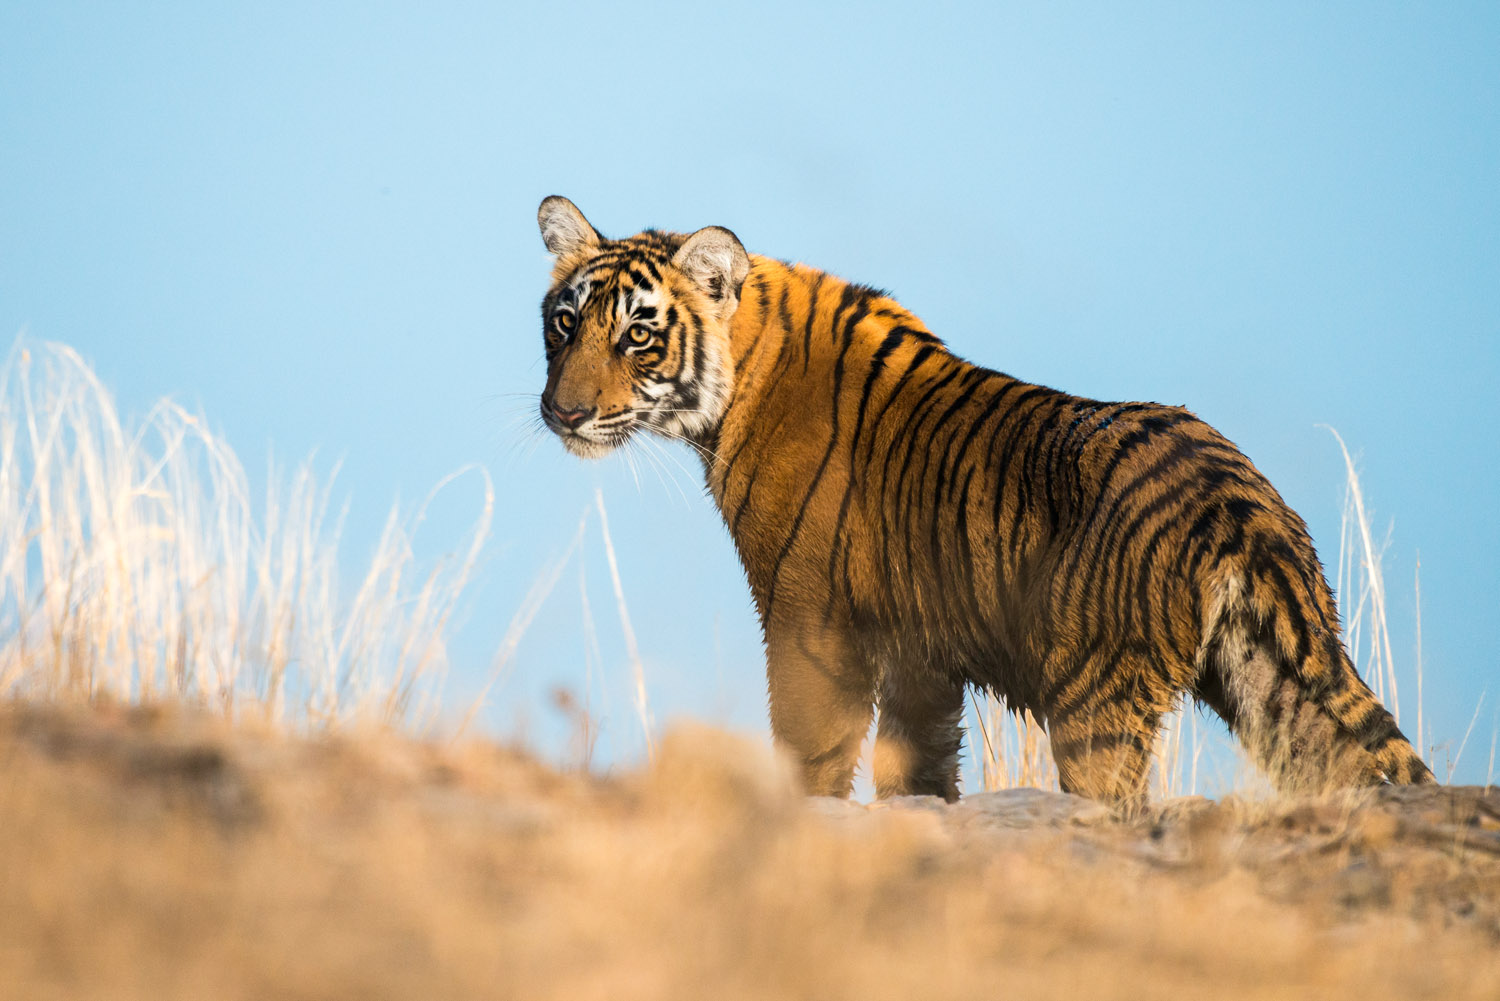 Bengal tiger cub by Lake Rajbagh, Ranthambhore National Park, Rajasthan, India